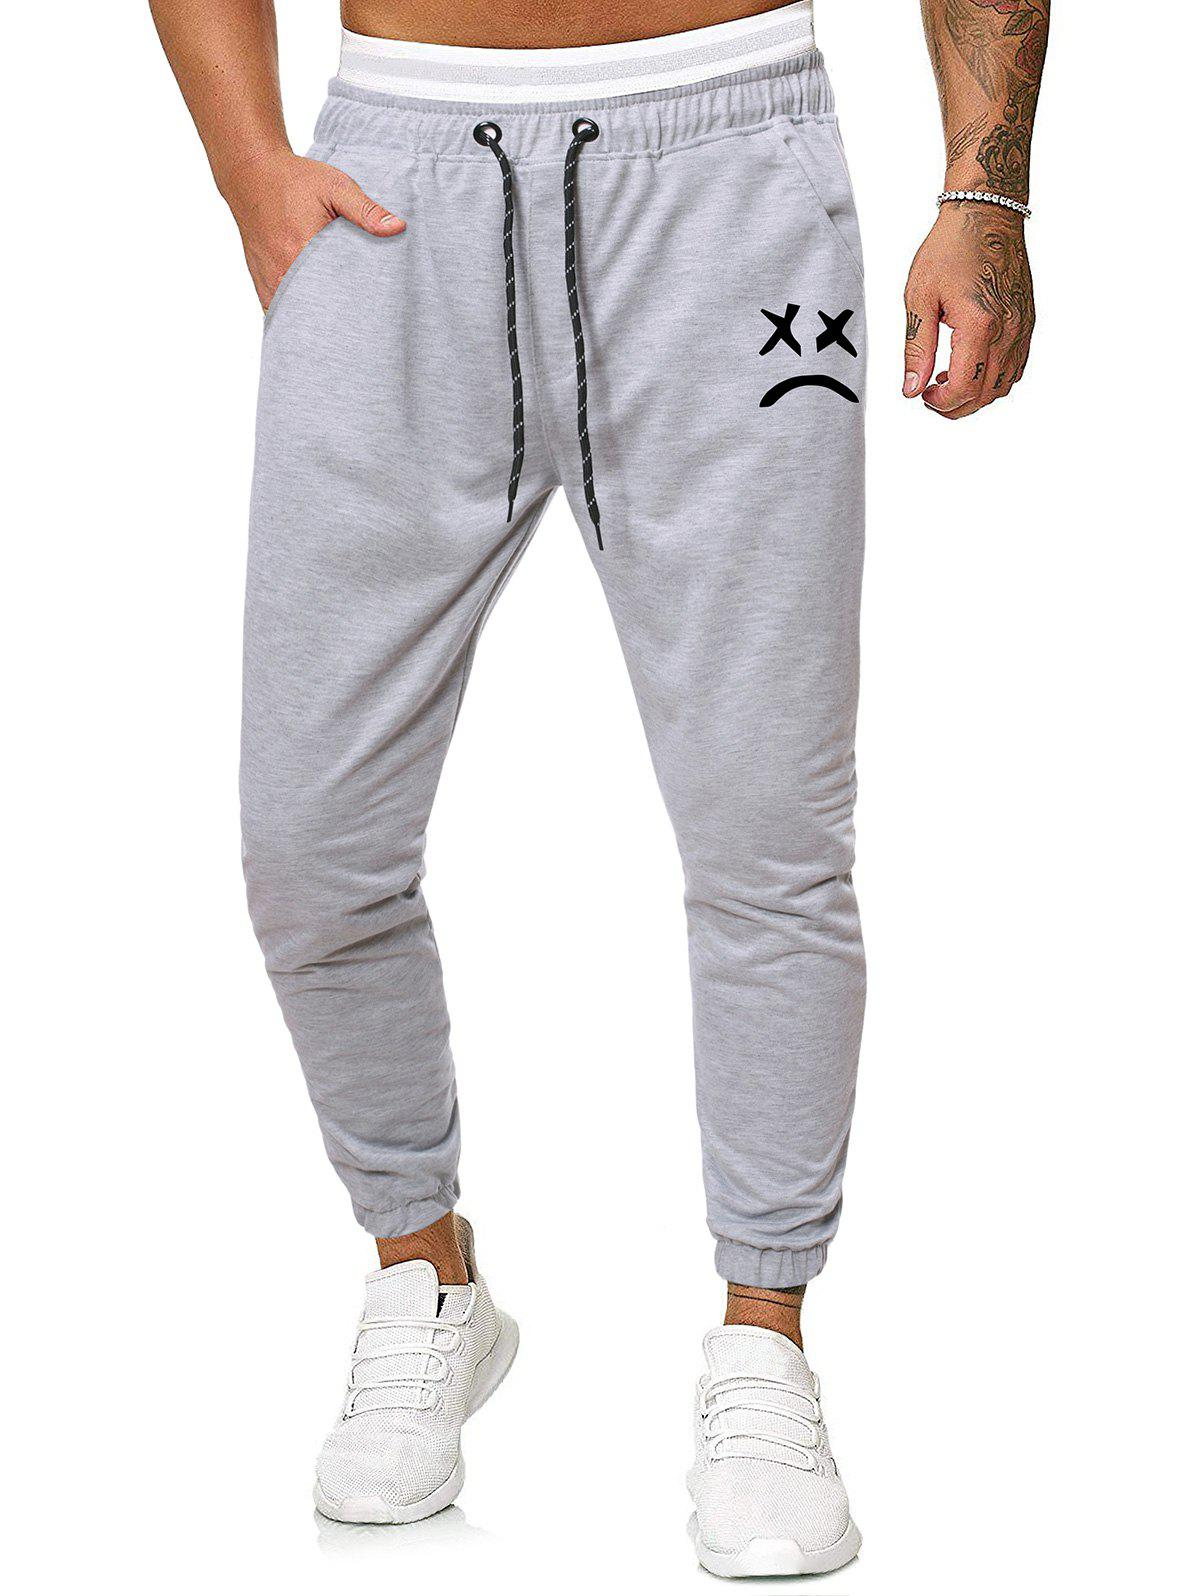 Funny Face Graphic Casual Drawstring Sweatpants - LIGHT GRAY XXL